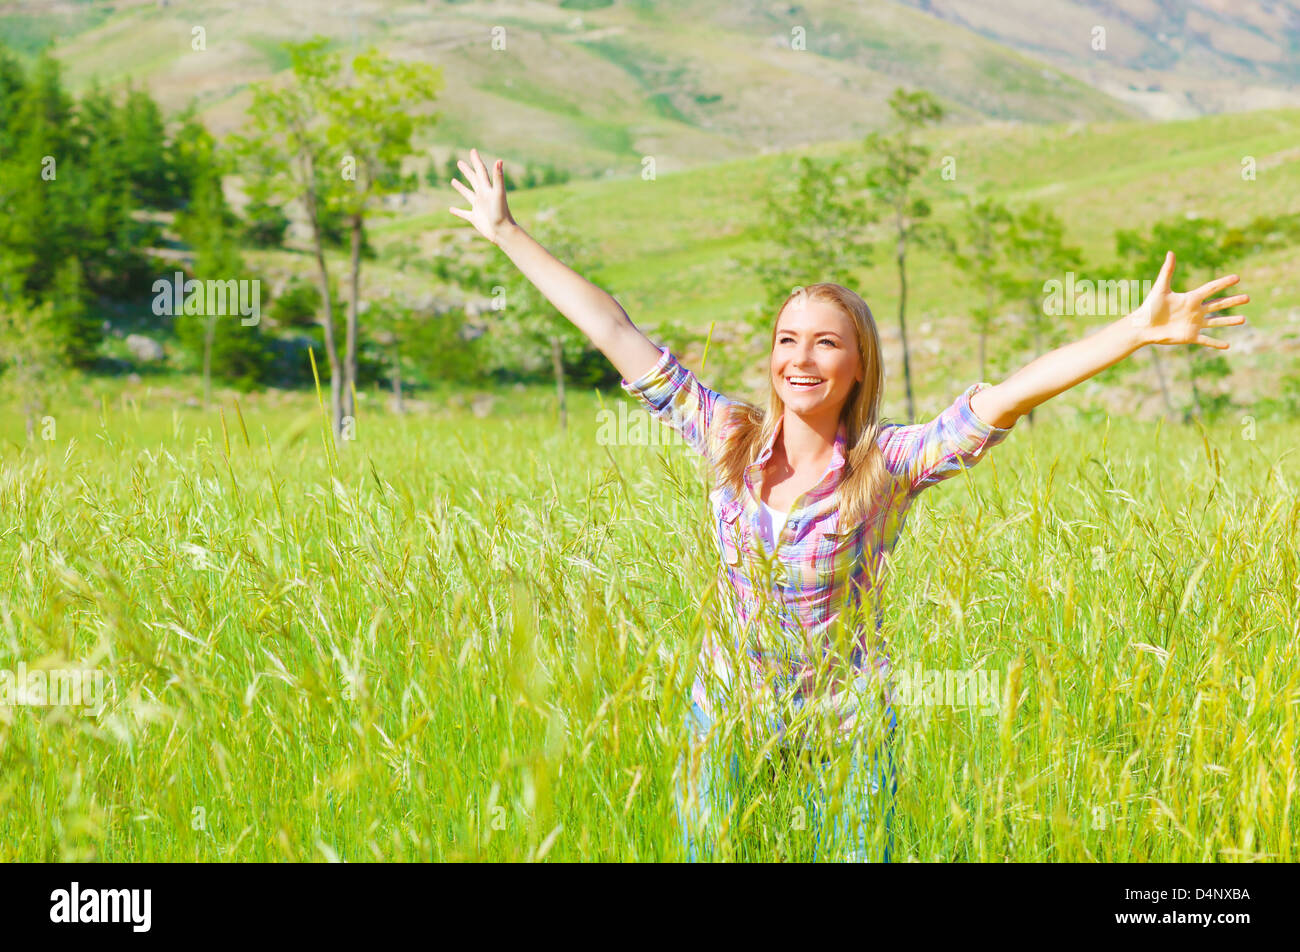 Female enjoying green field, hands up in fresh air, standing in spring wheat grass, freedom and happiness concept - Stock Image